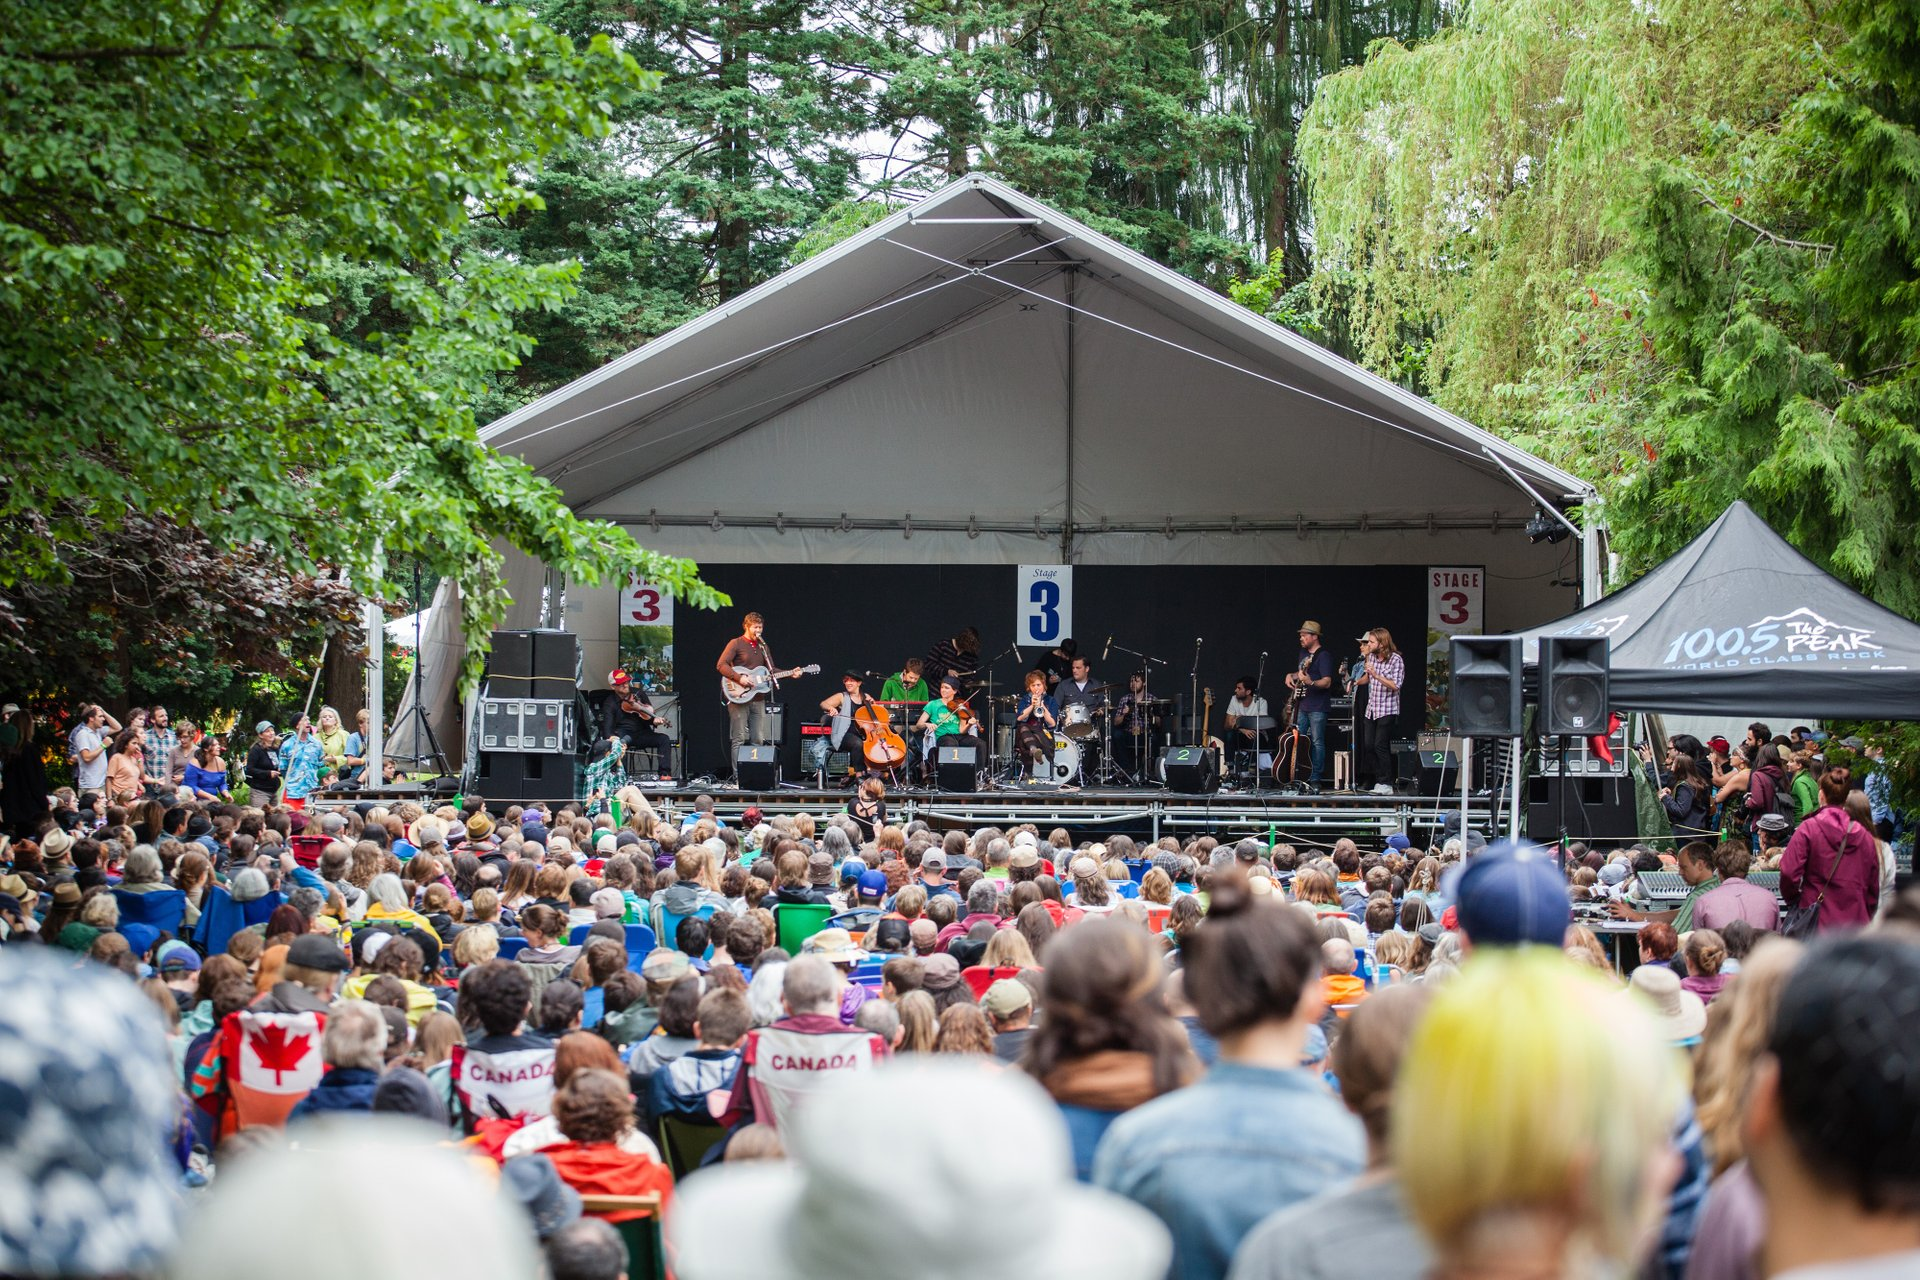 Best time to see Vancouver Folk Music Festival in Vancouver 2019